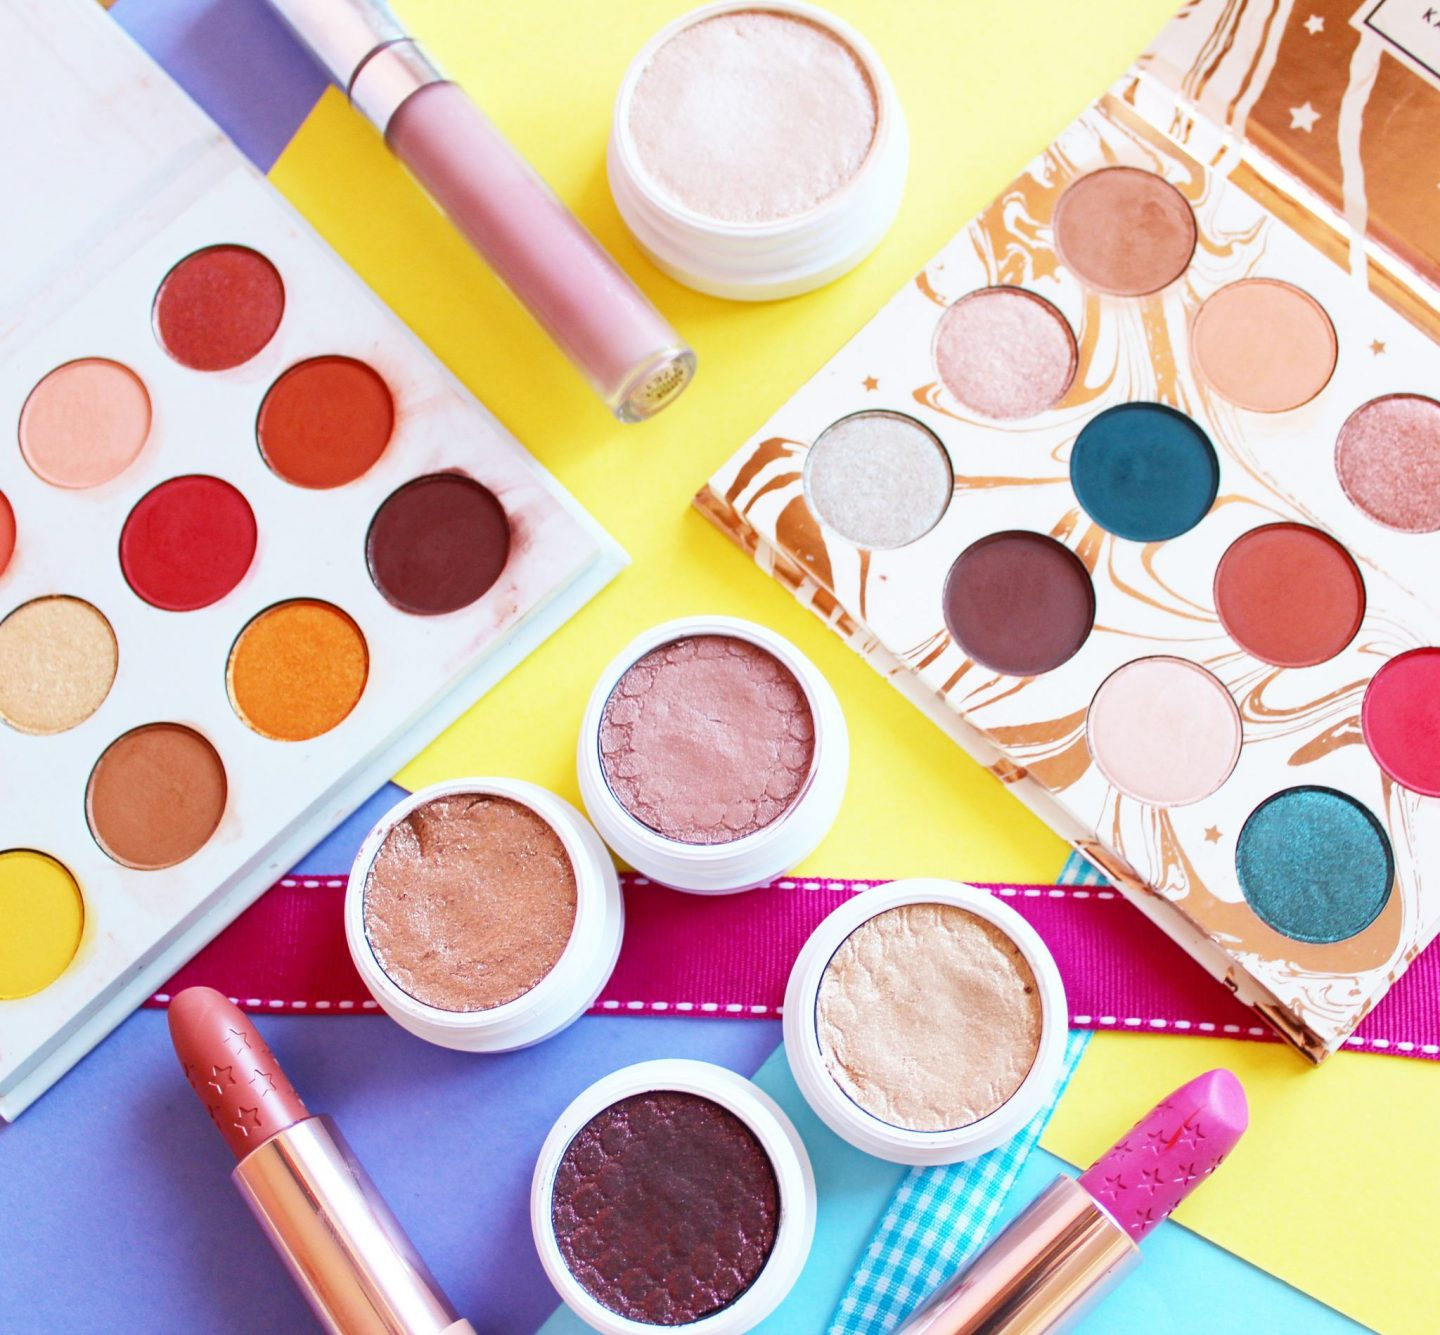 From the UK? Still Not Tried ColourPop? Here's Why You're Missing Out...